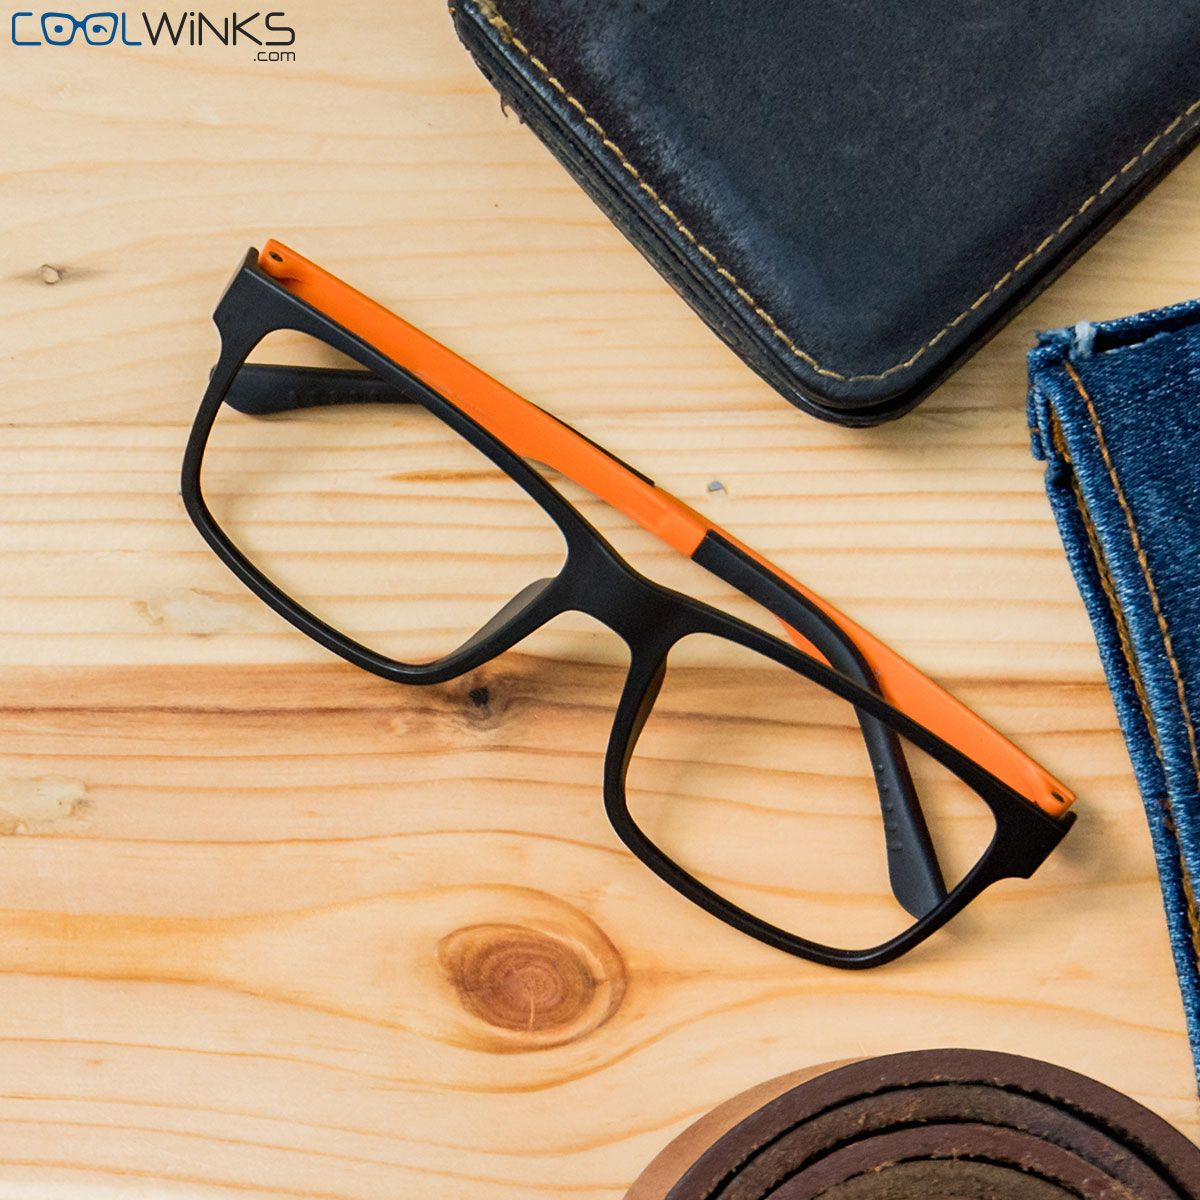 c18c0f3fe4 ... more on Eyeglasses by Coolwinks.com. Even Better than Half Price Sale! Get  FRAMES for FREE